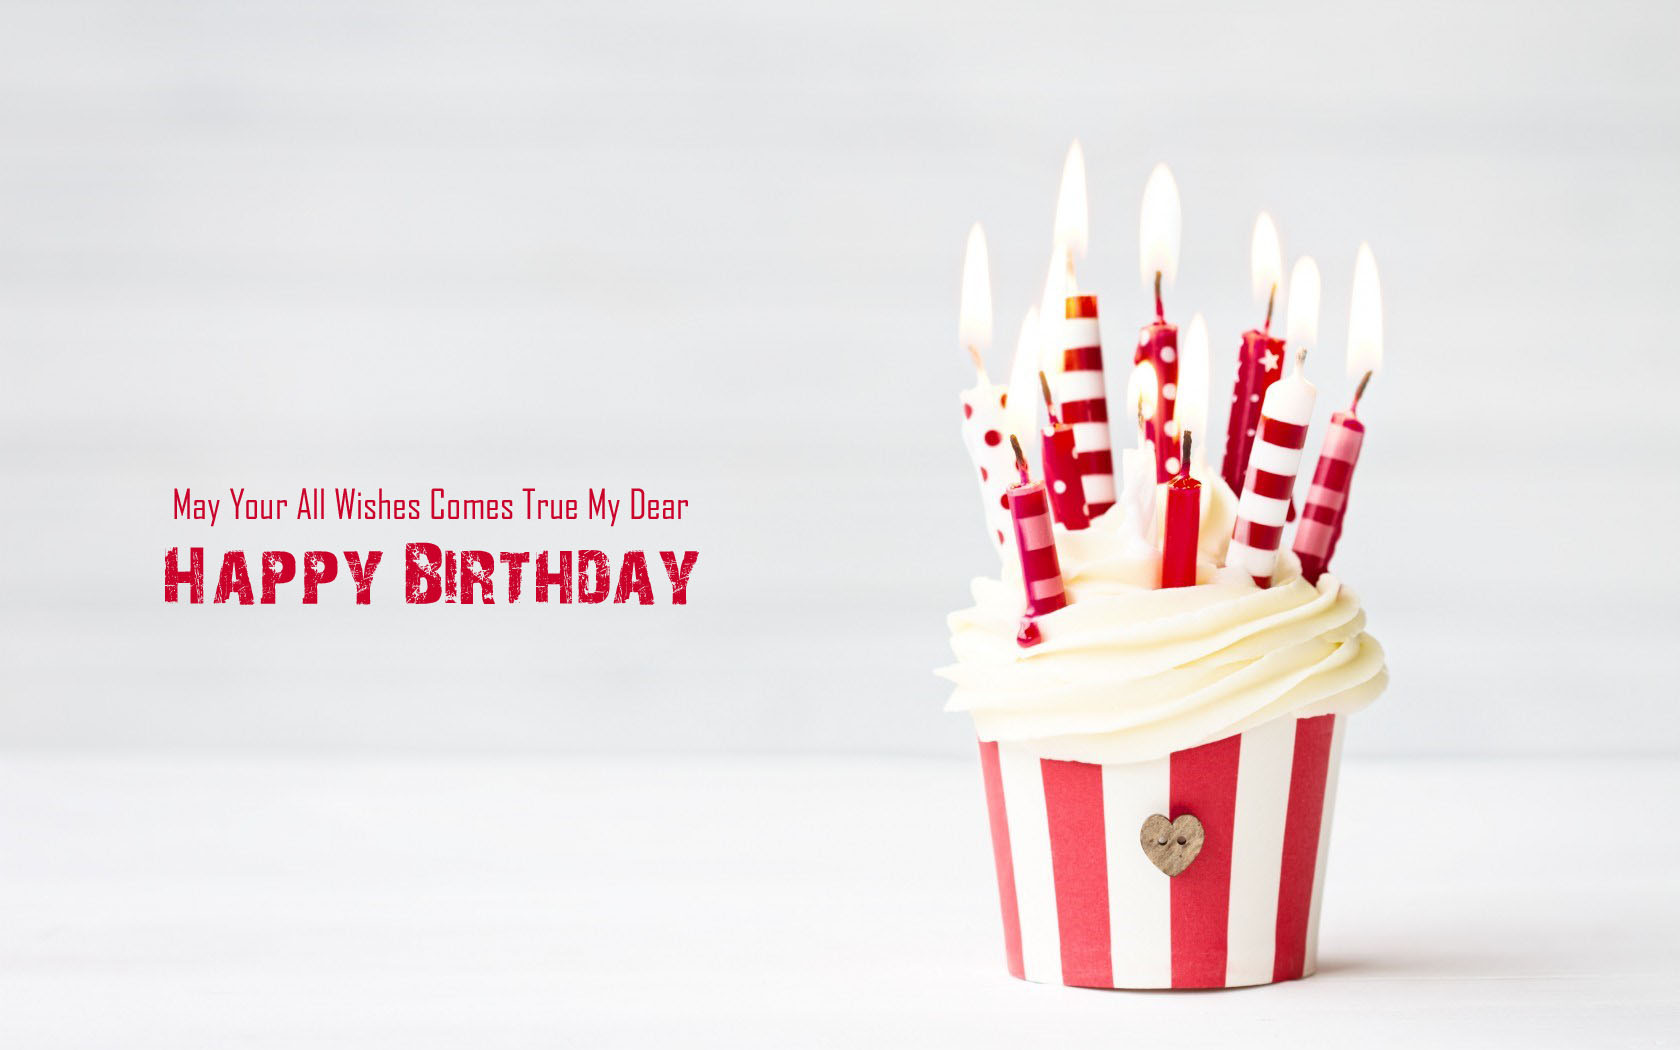 happy birthday wishes hd ; hd-wallpapers-for-birthday-wishes-9dab5fb48469bf11c6b0633f43a7f49e